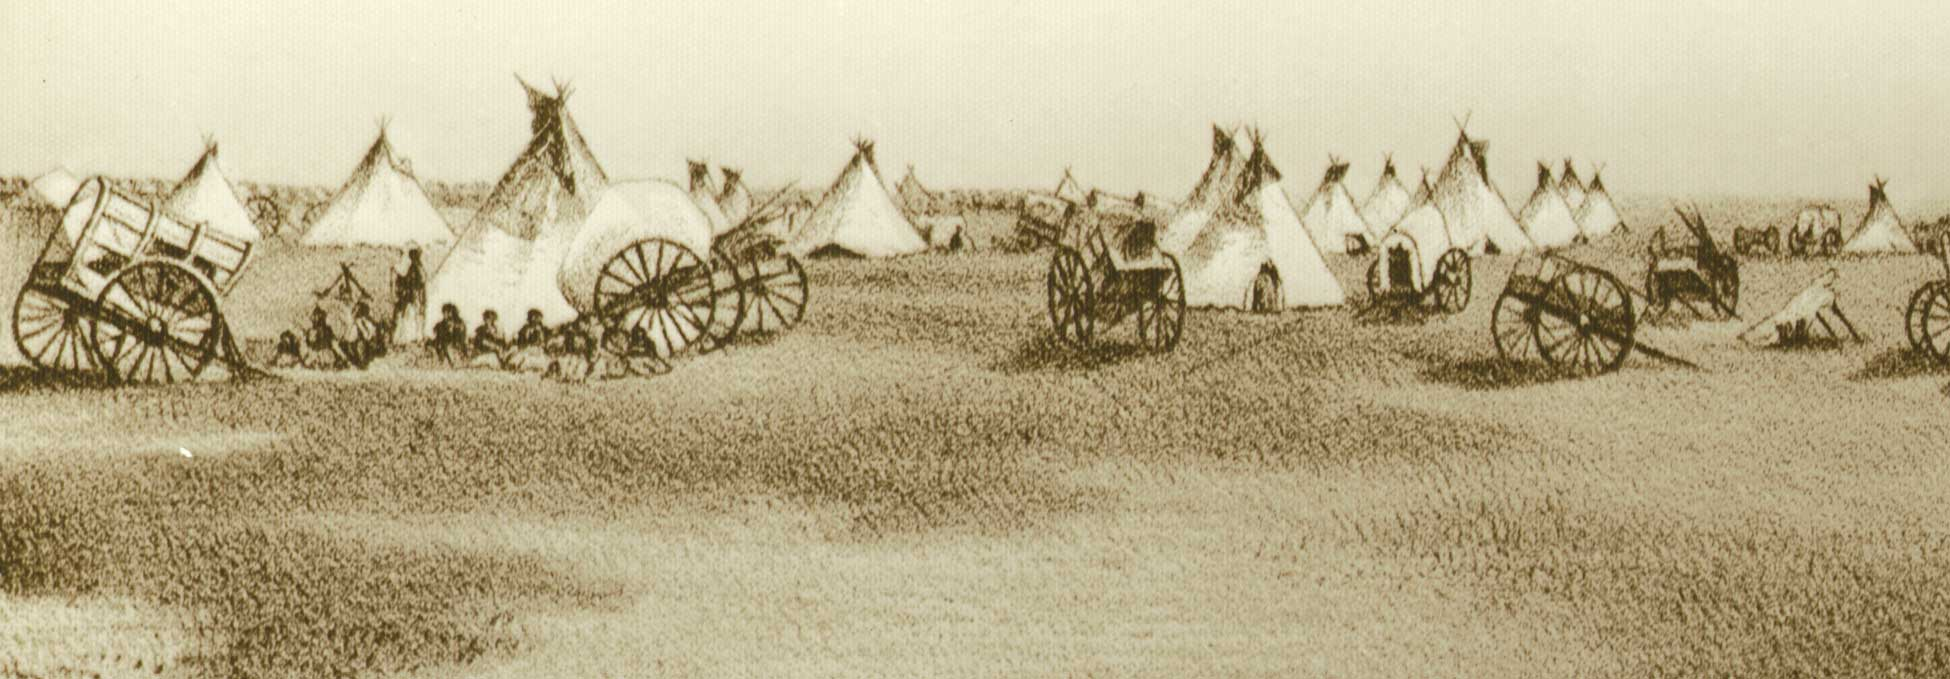 Sketch of a Métis campsite